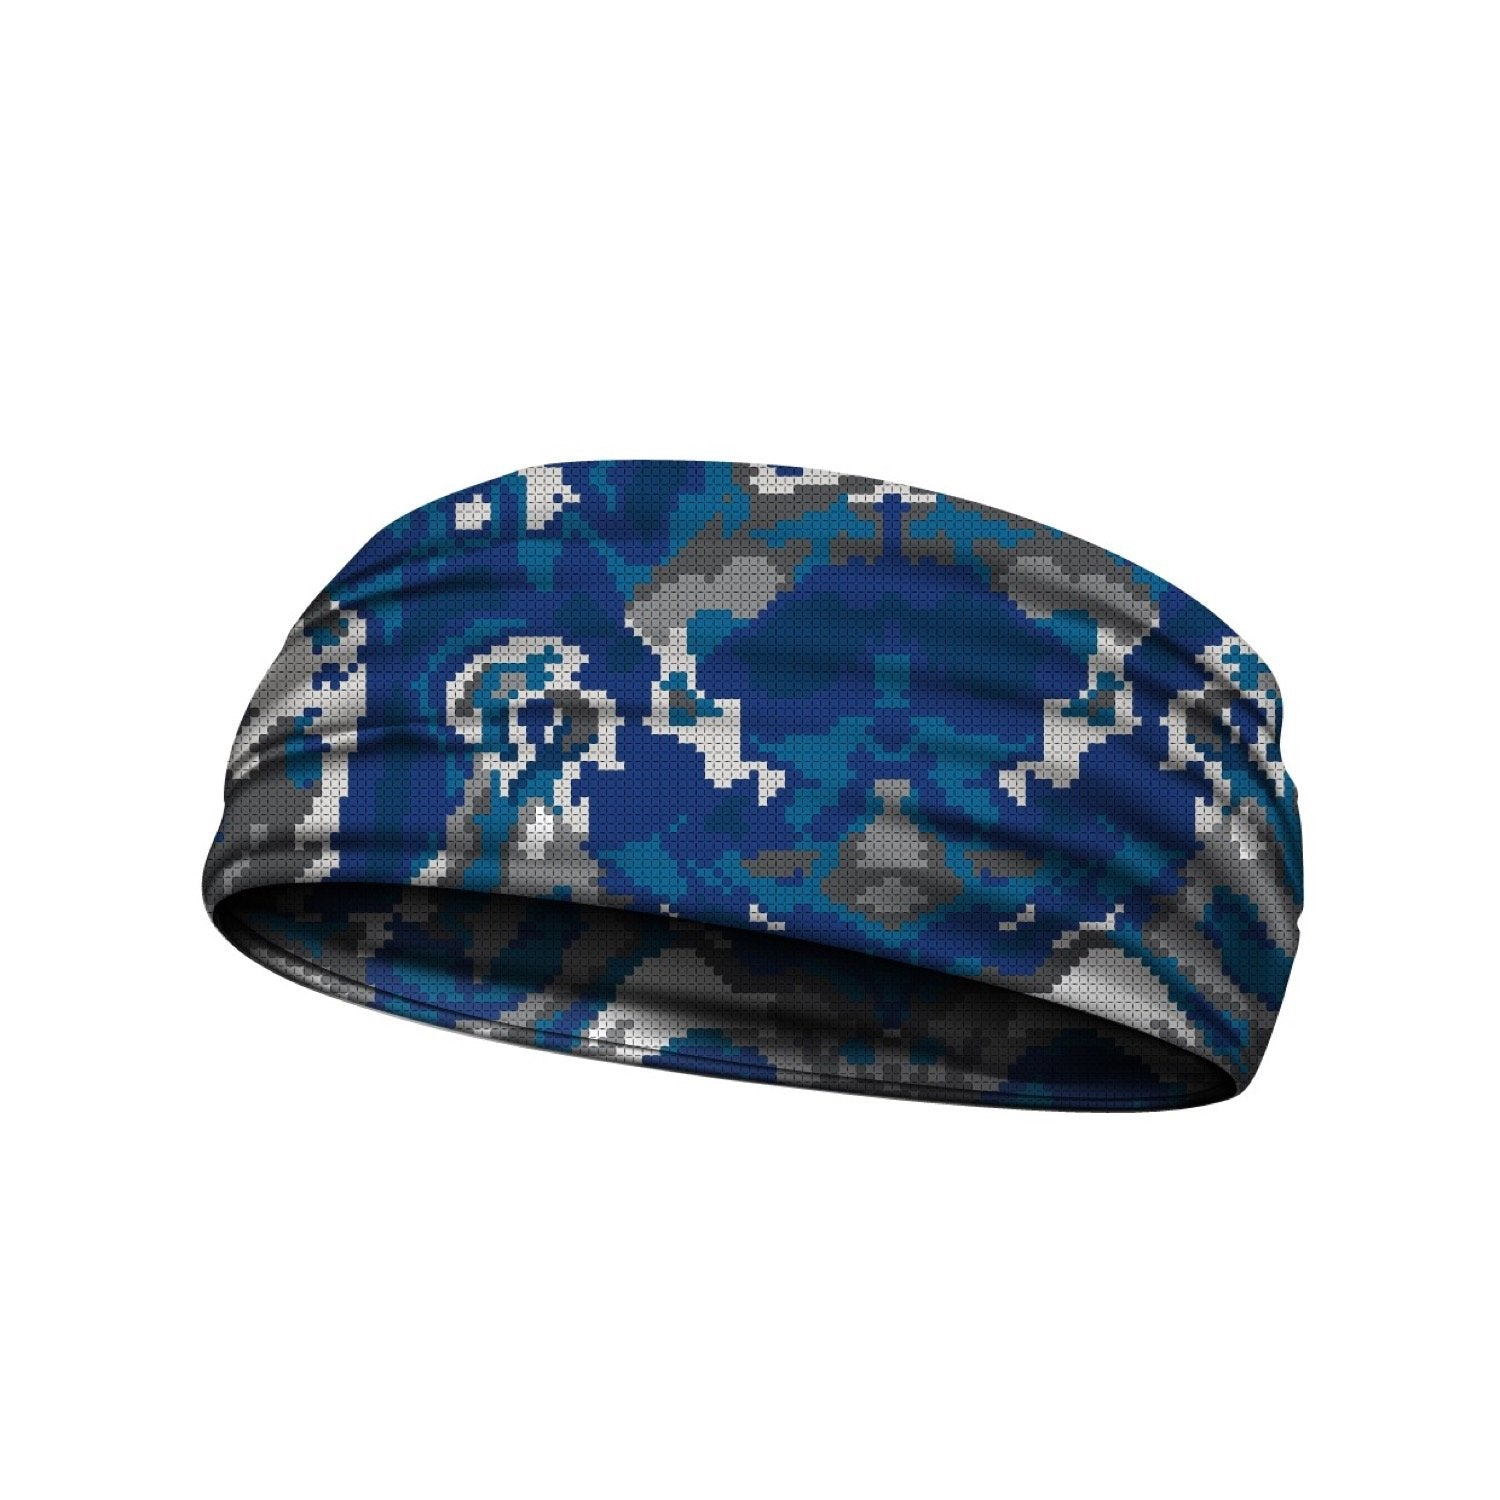 headbands wicked camo blue 3 widths available